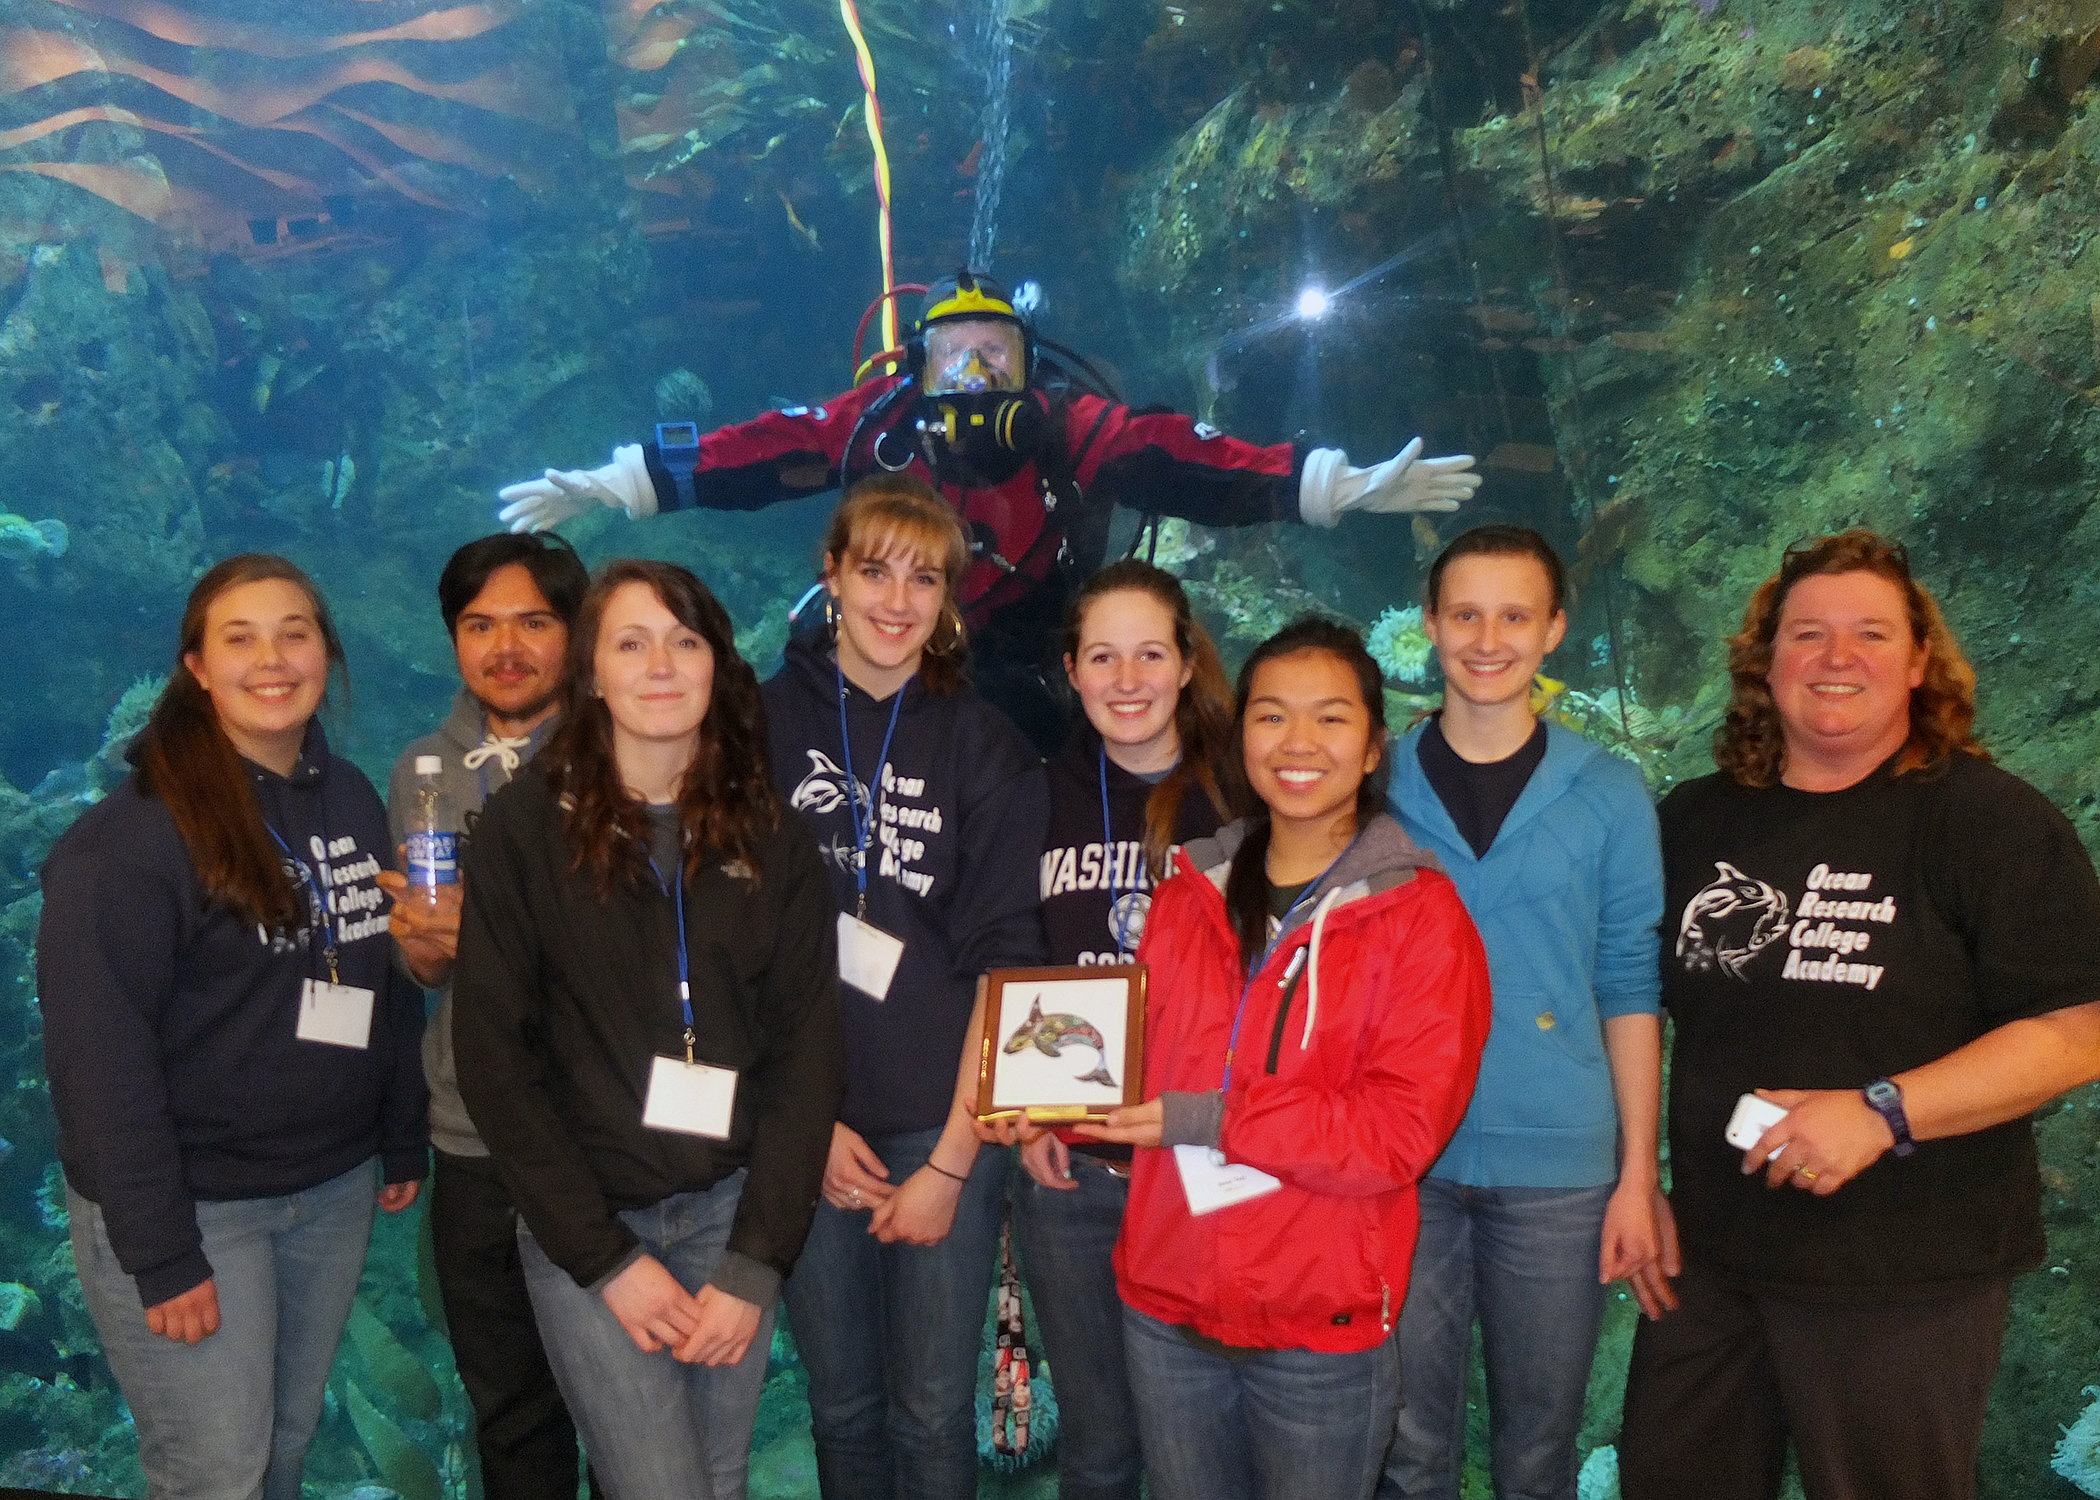 2014 champions ORCA team 'A' after the awards ceremony at the Seattle Aquarium.